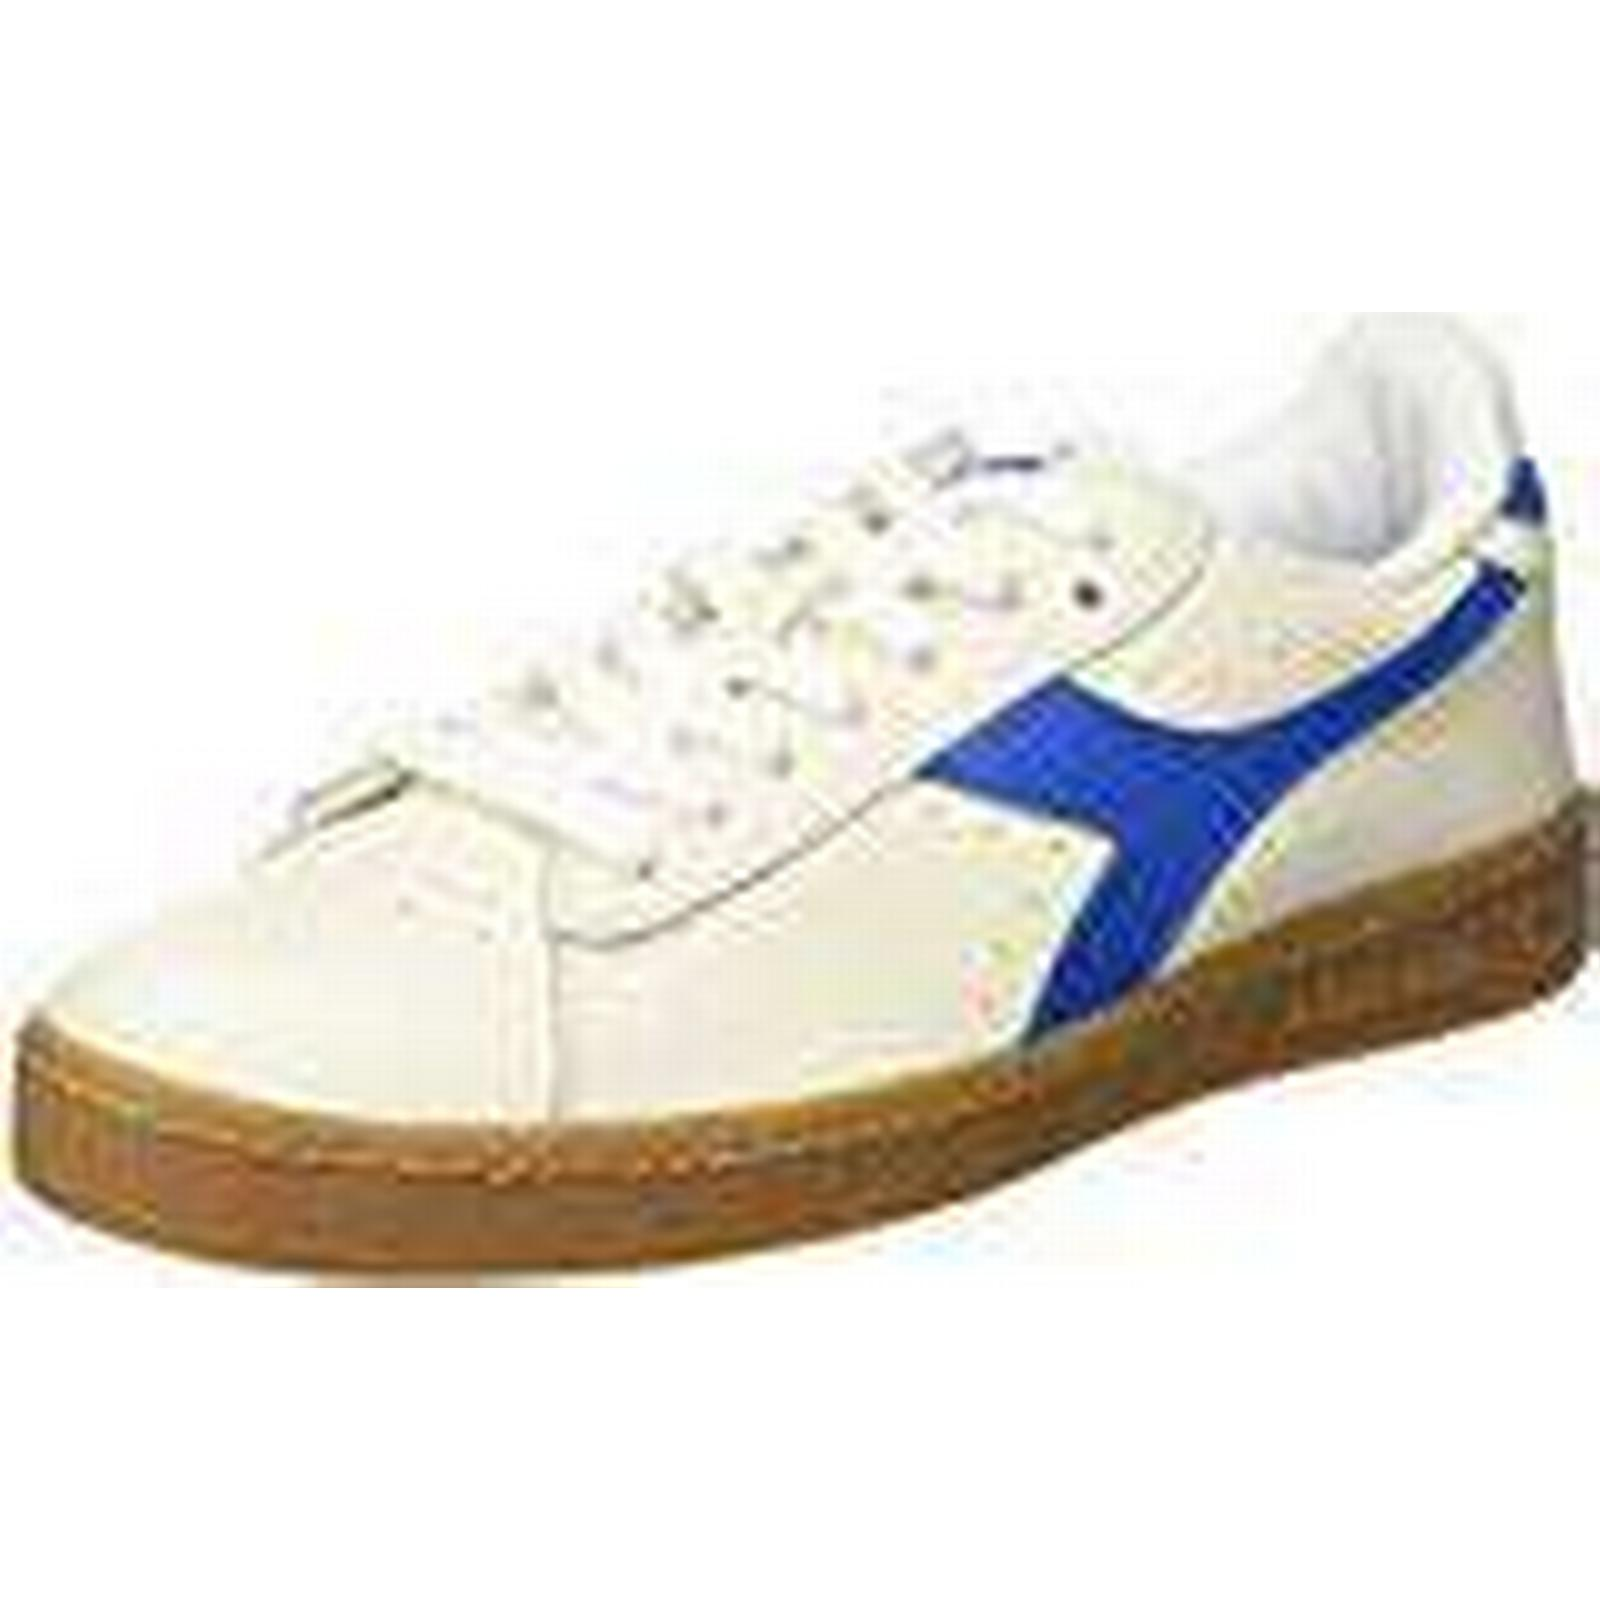 Diadora Men's Shoes, Game L Low Gymnastics Shoes, Men's Off White (Bianco Blu Imperiale), 12 UK 520c76